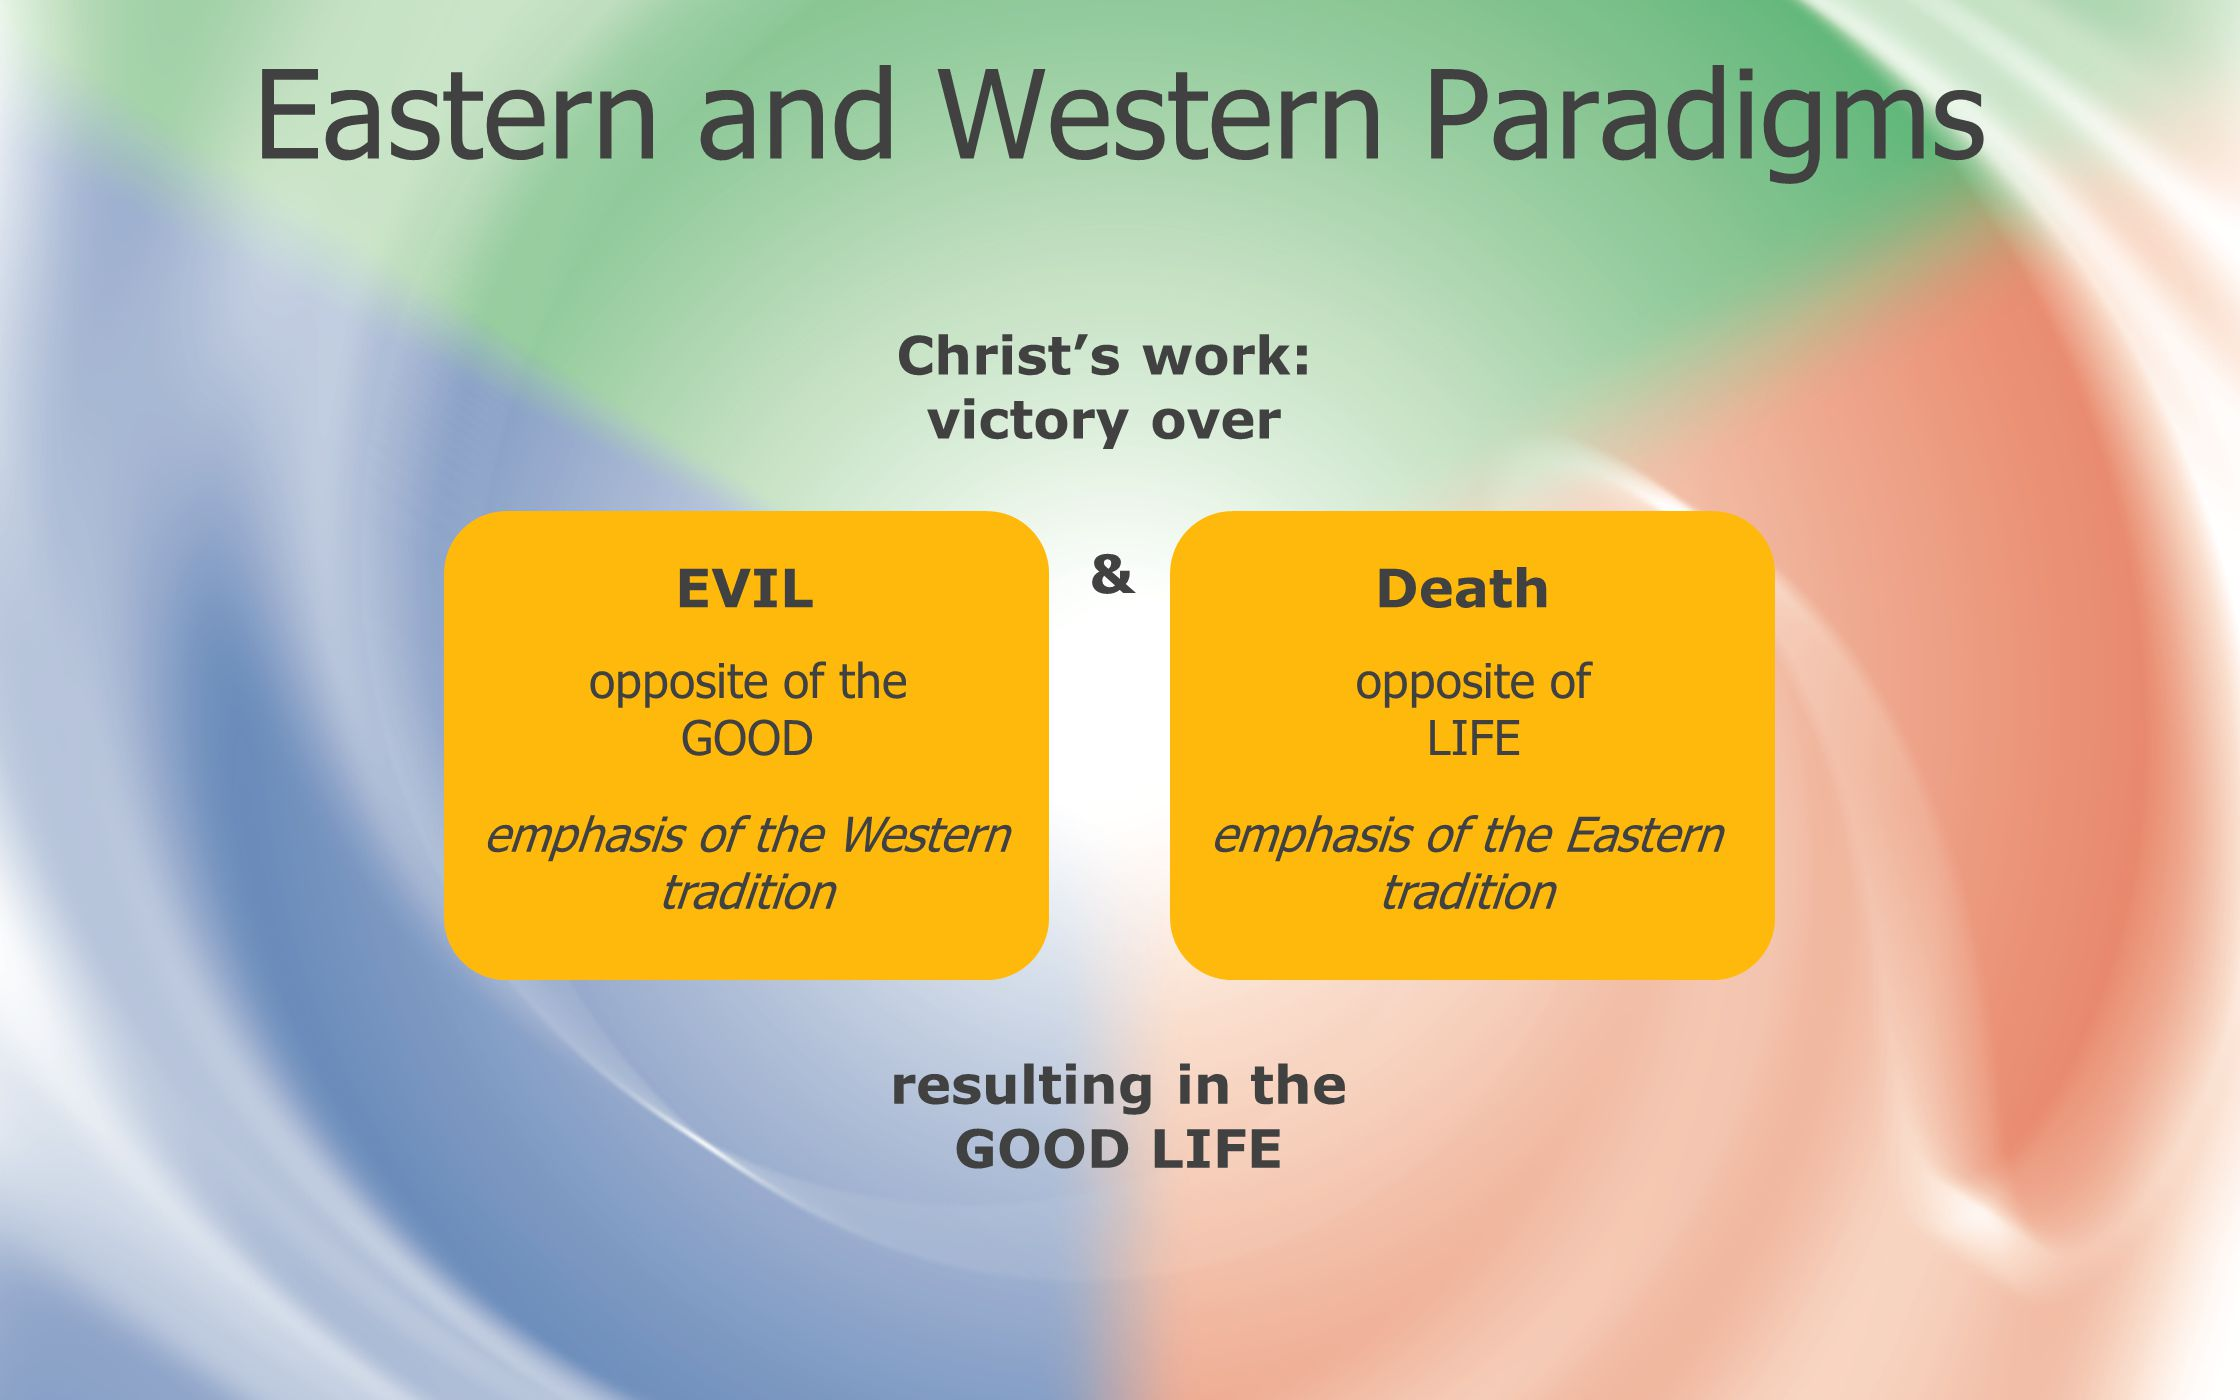 Connect with the author at facebook.com/ChristianA.Schwarz Christ's work: victory over EVILDeath opposite of LIFE emphasis of the Eastern tradition resulting in the GOOD LIFE opposite of the GOOD emphasis of the Western tradition & Eastern and Western Paradigms